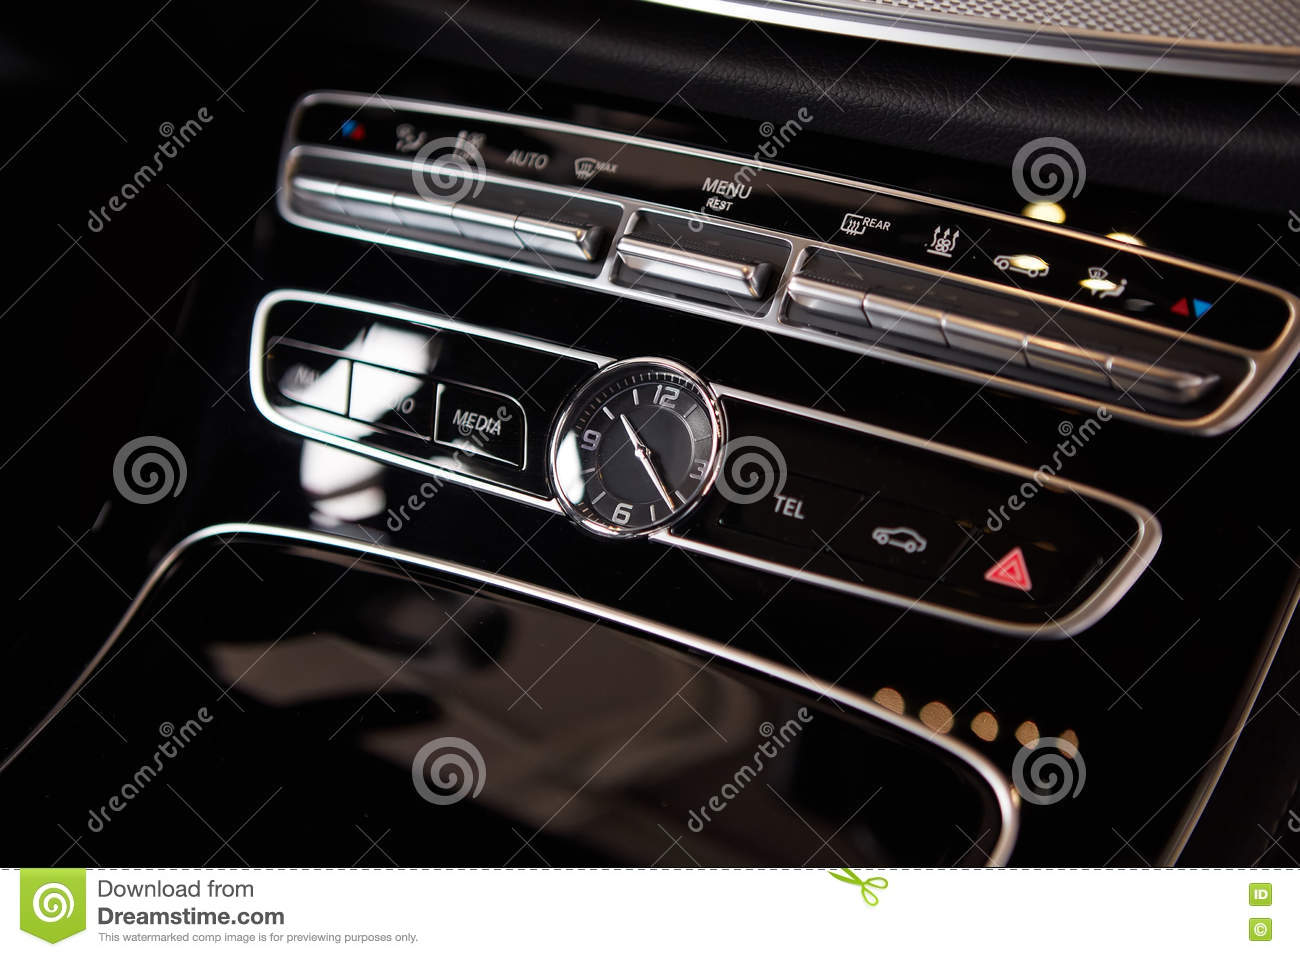 Luxury car interior details. Middle console with air and multimedia controls